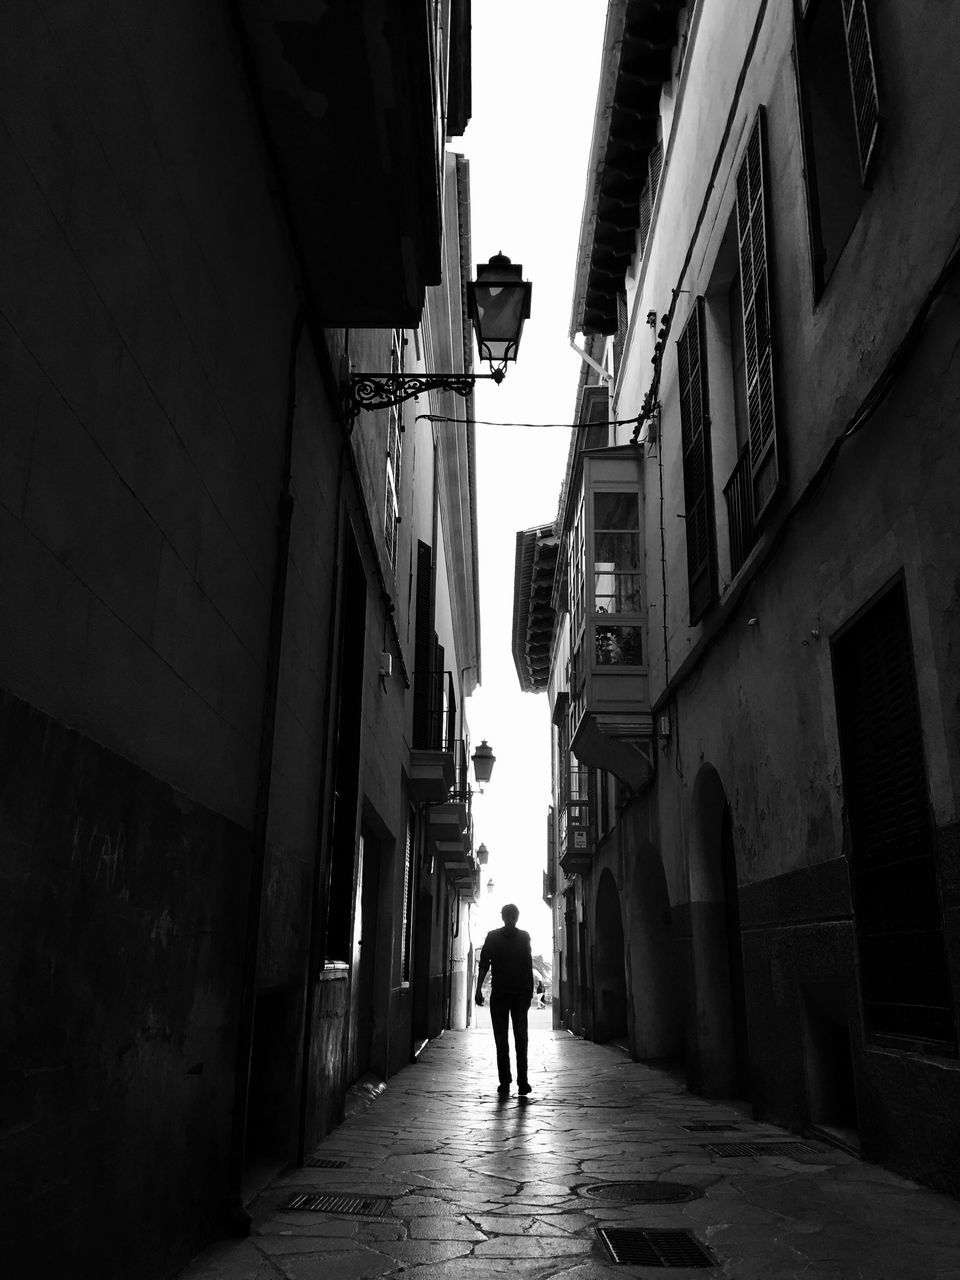 architecture, built structure, walking, building exterior, the way forward, alley, rear view, real people, full length, street, day, men, two people, lifestyles, women, city, outdoors, people